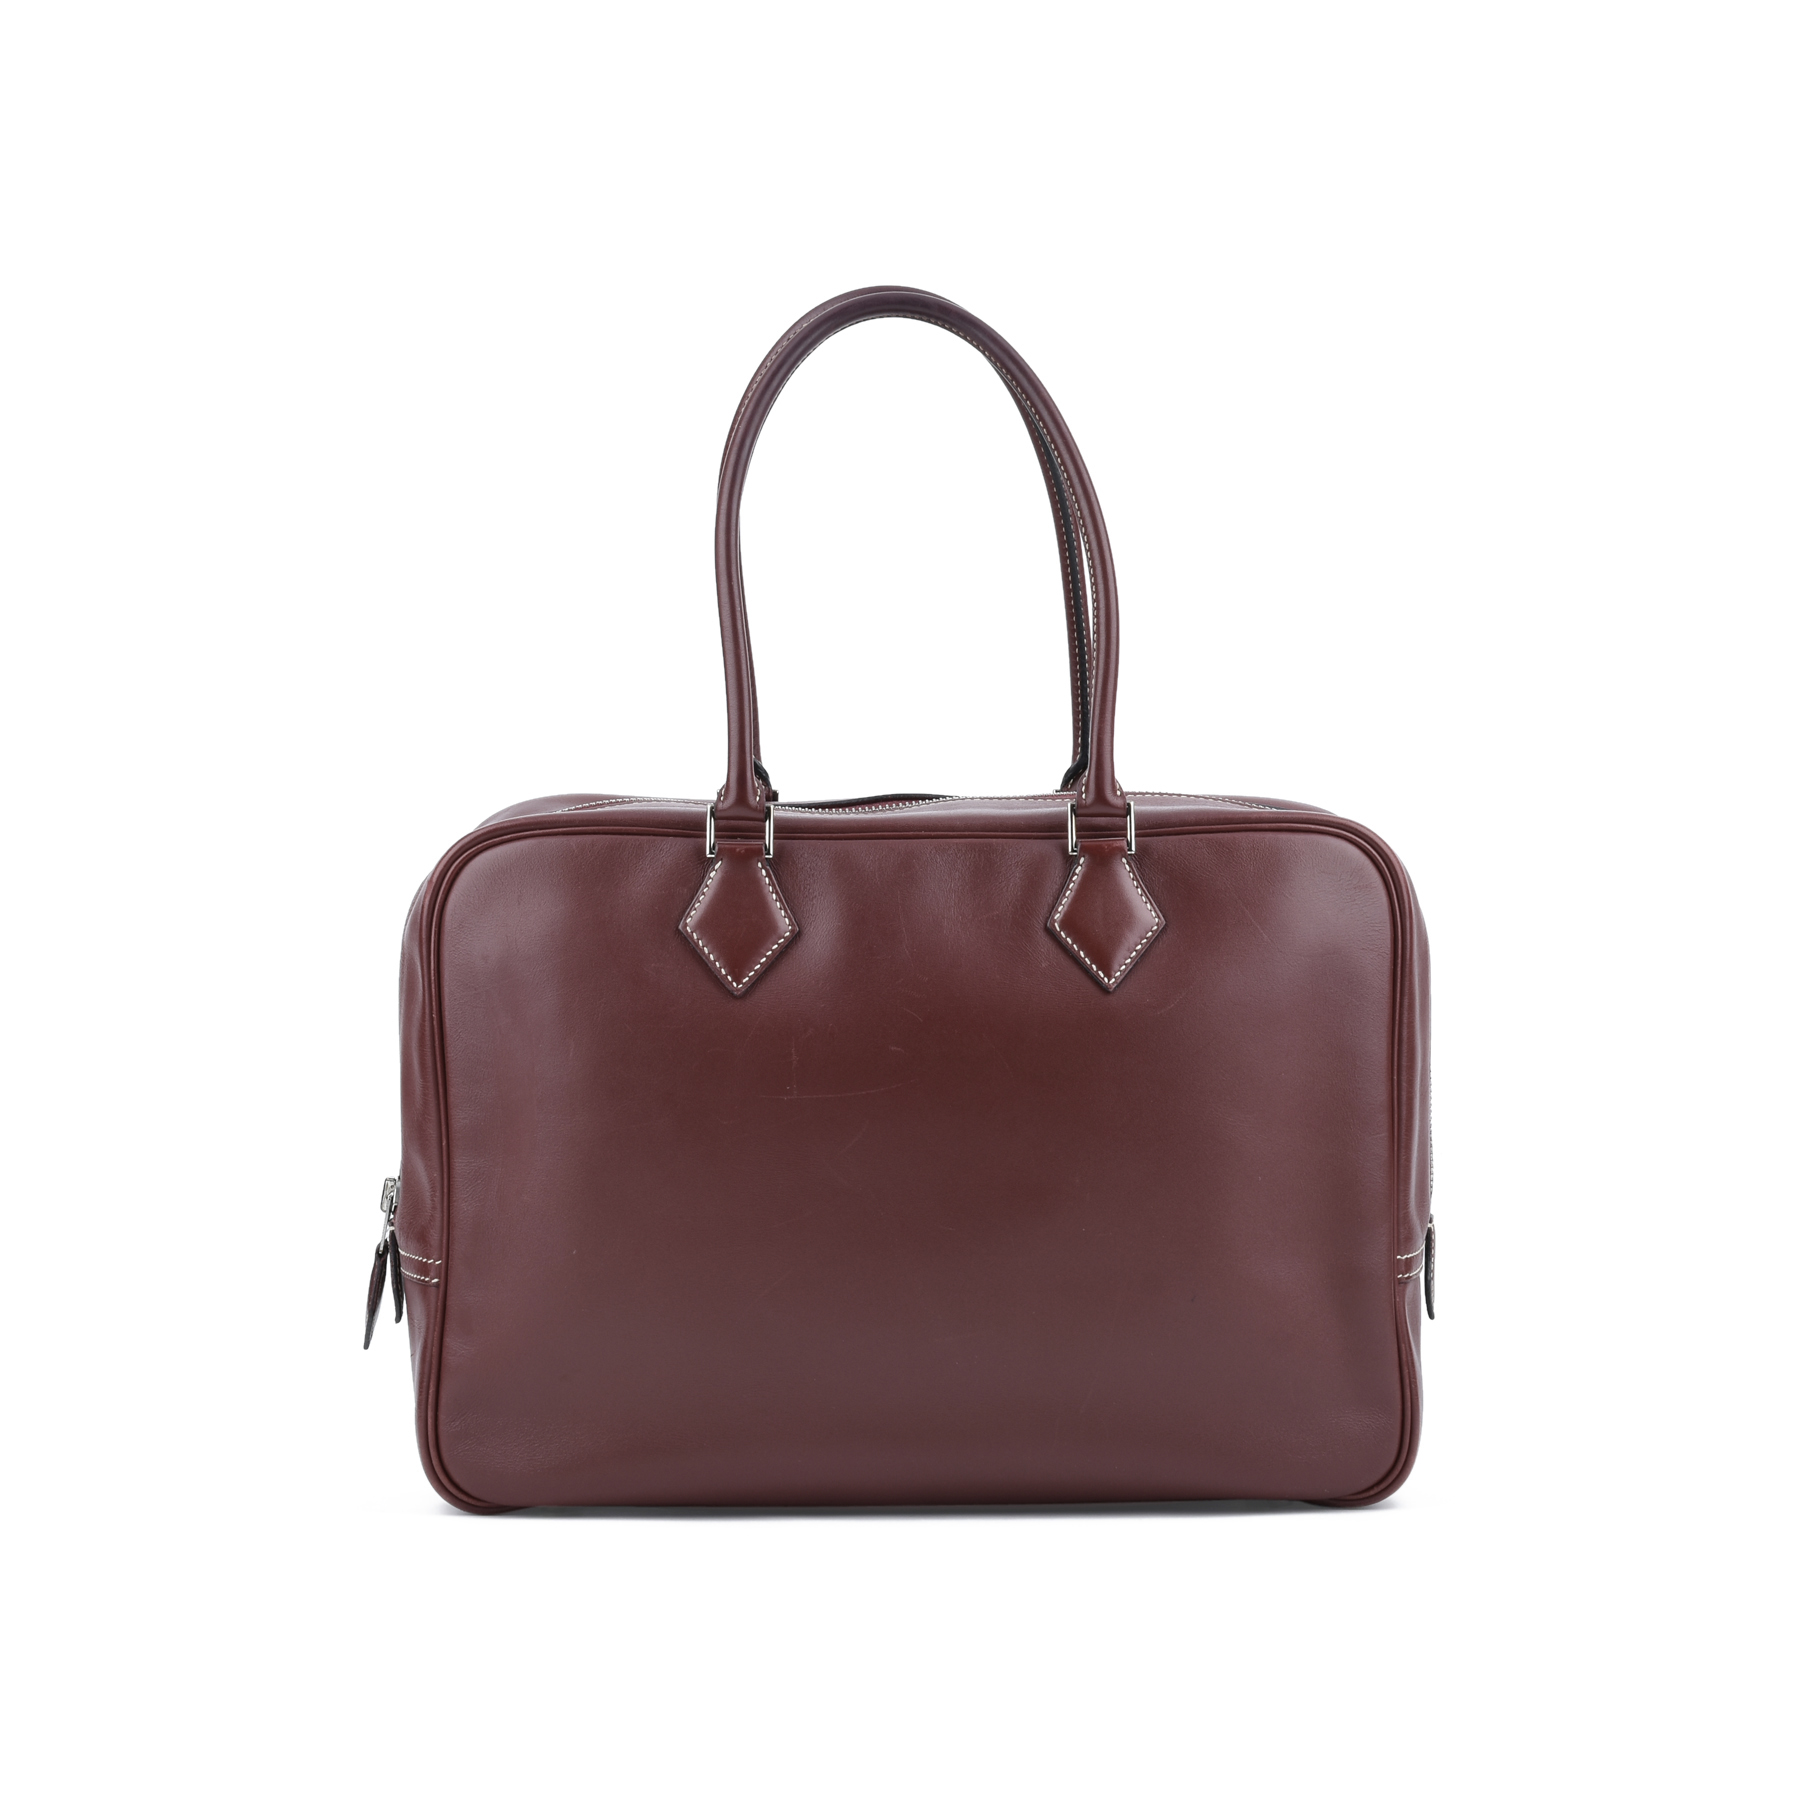 3e428d6afd Authentic Second Hand Hermès Plume 32 Bag (PSS-075-00078) | THE FIFTH  COLLECTION